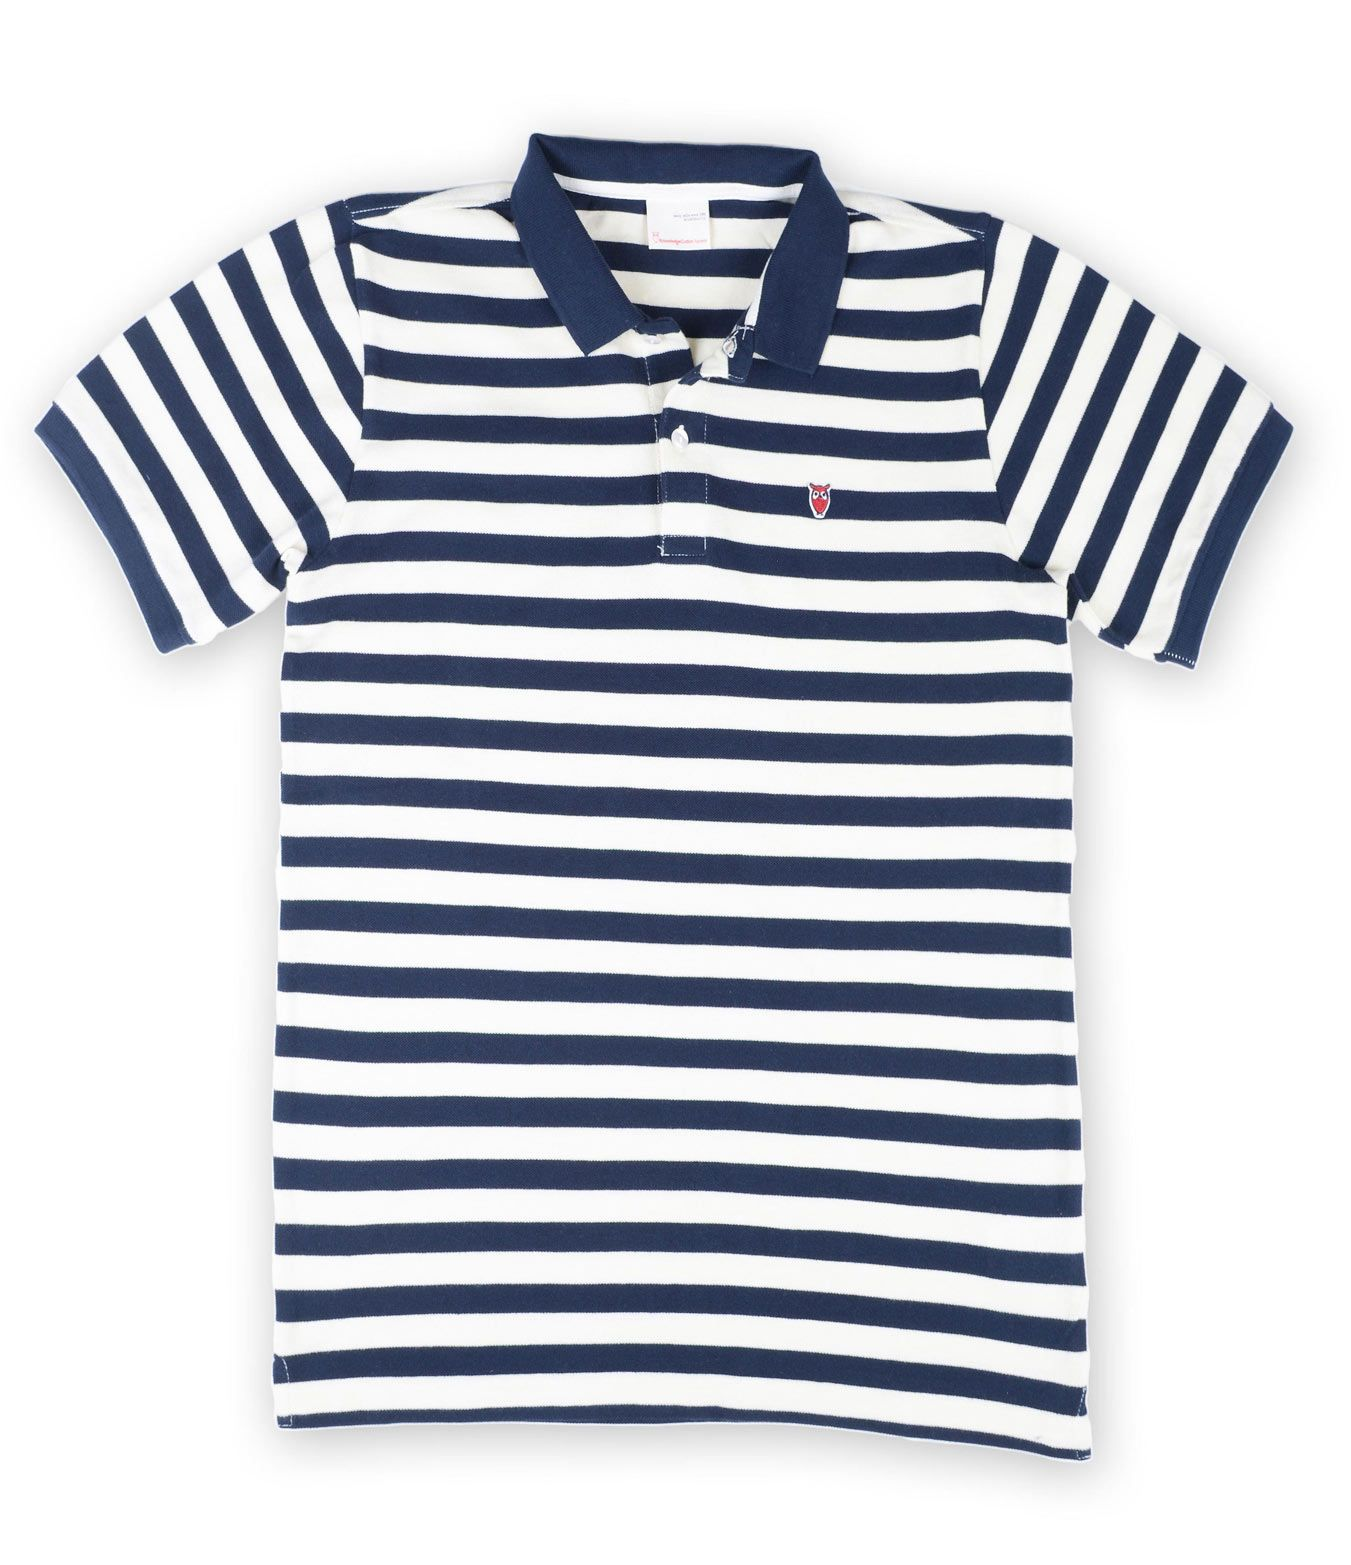 Poloshow Knowledge Cotton Apparel Stripes V80 9515WH